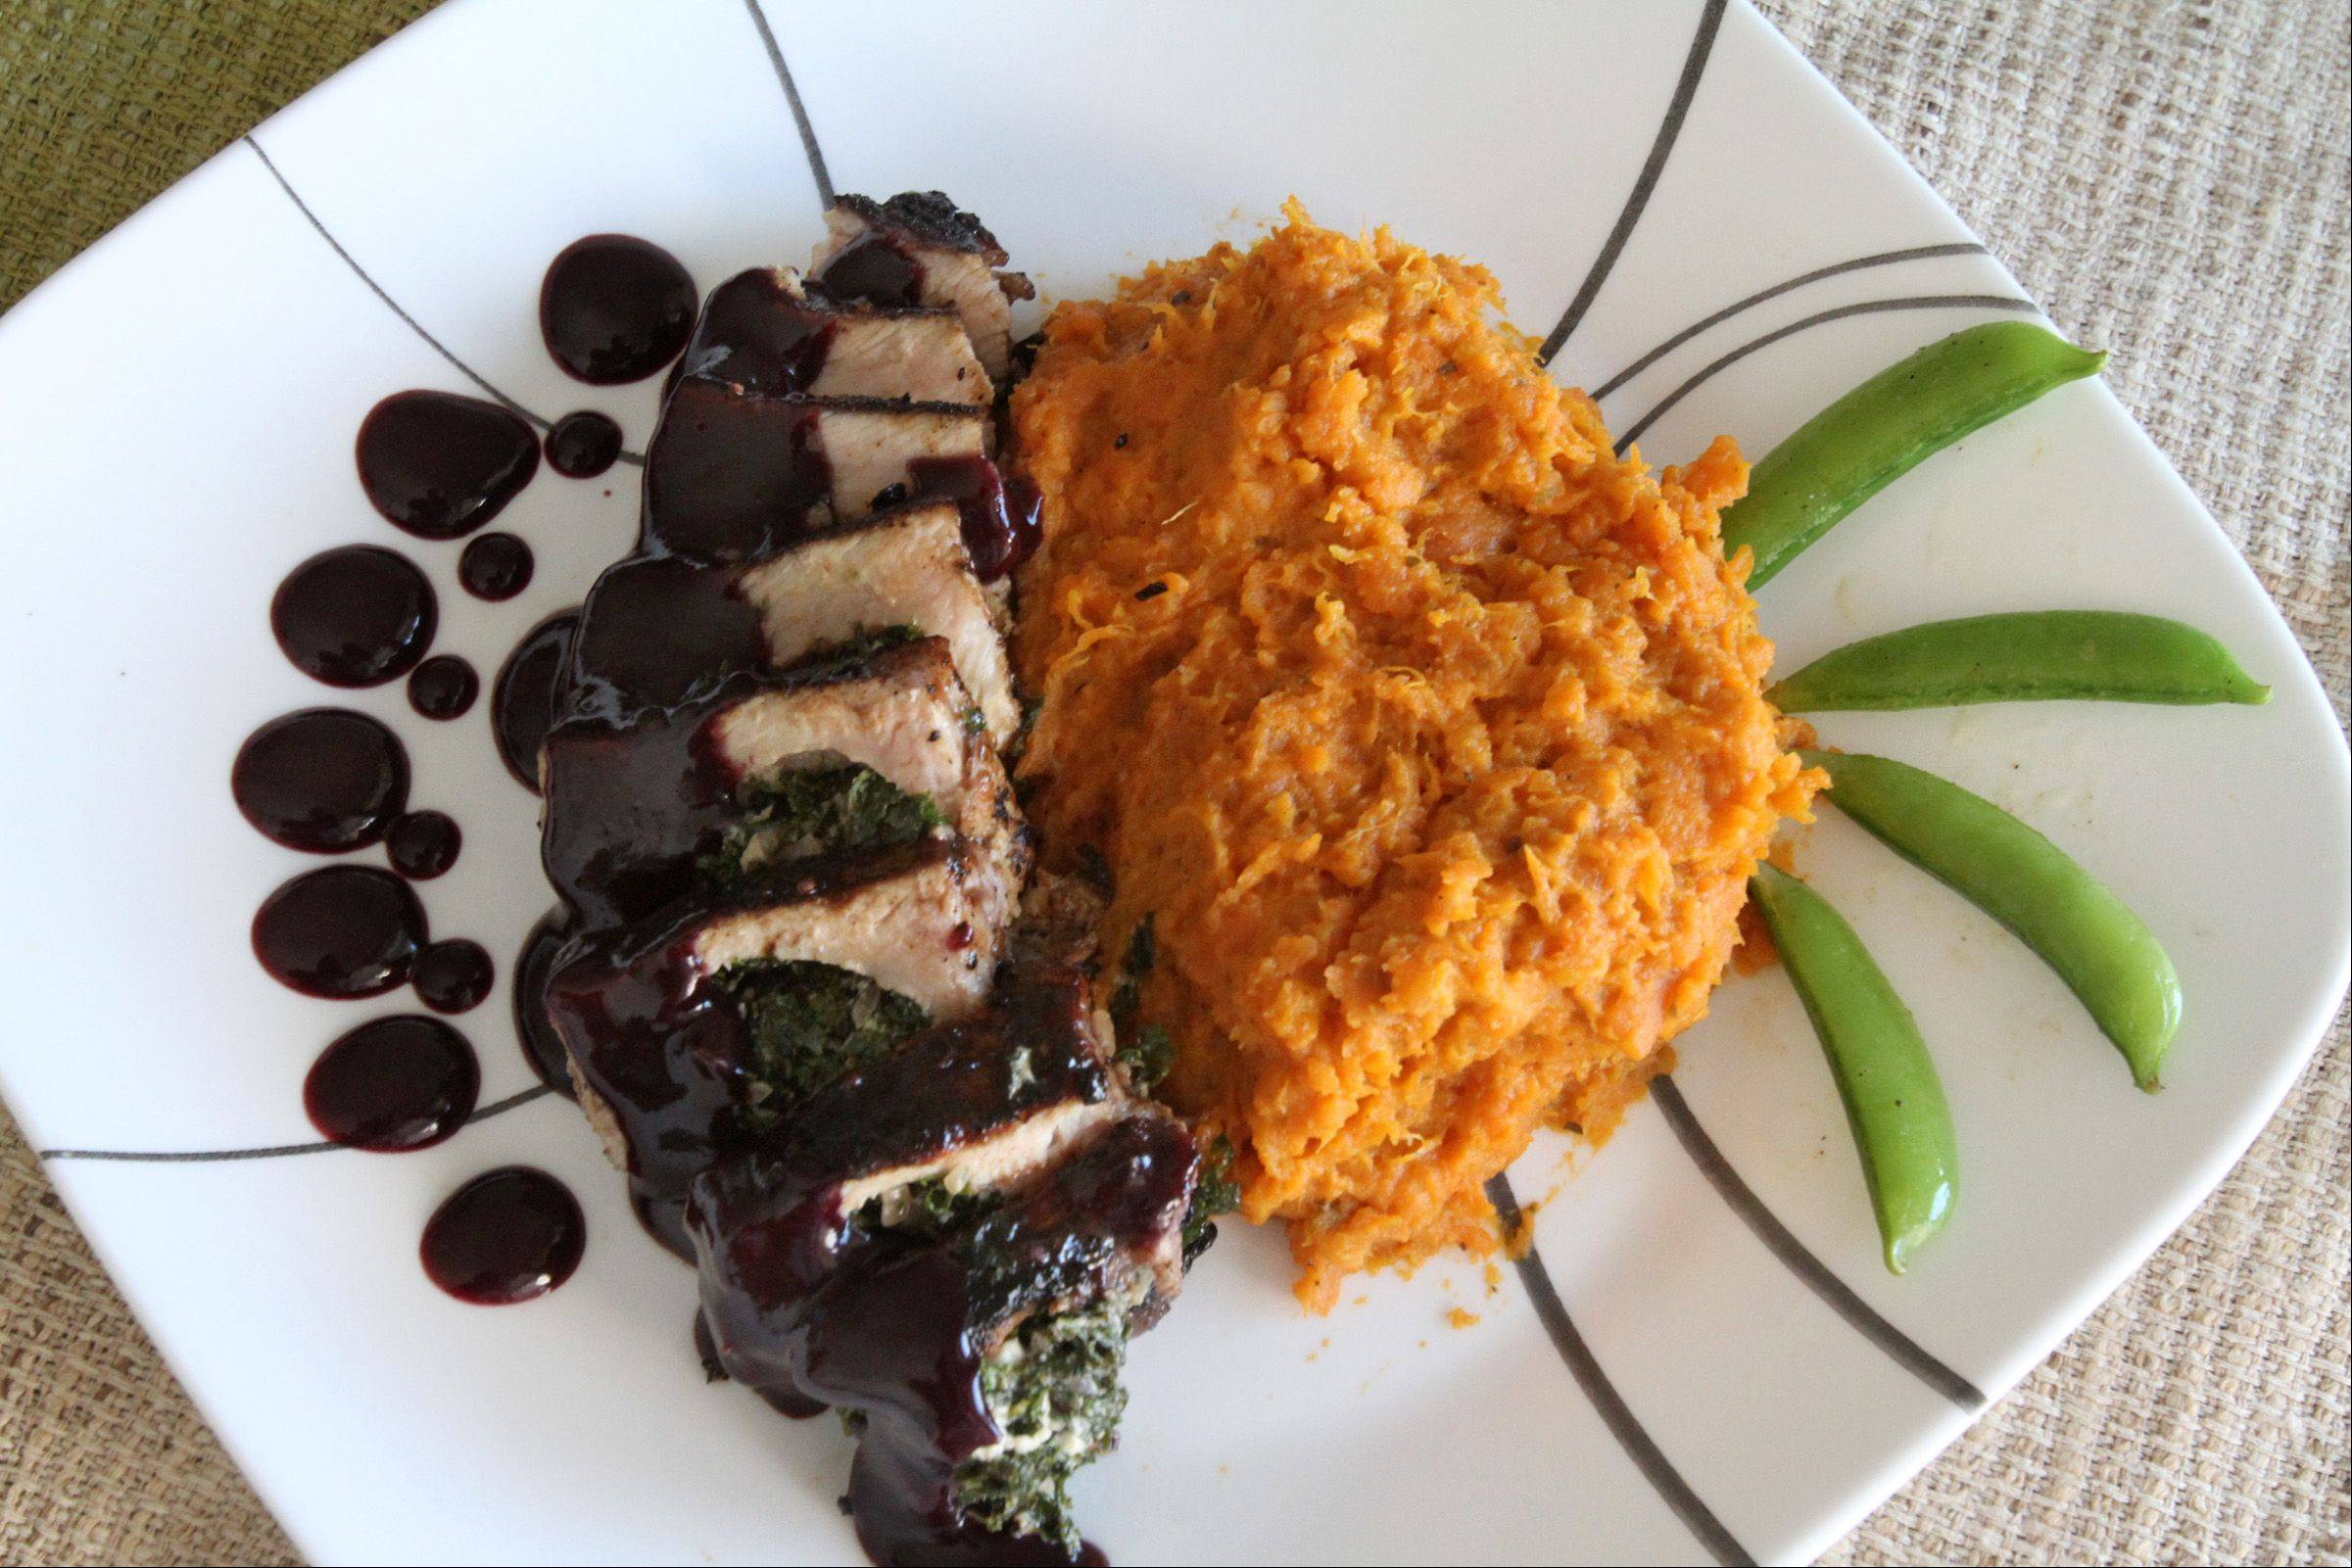 Cook of the Week Challenge contestant Rachel Hencz created a sherry and blueberry barbecue sauce for her kale and feta-stuffed pork chops.